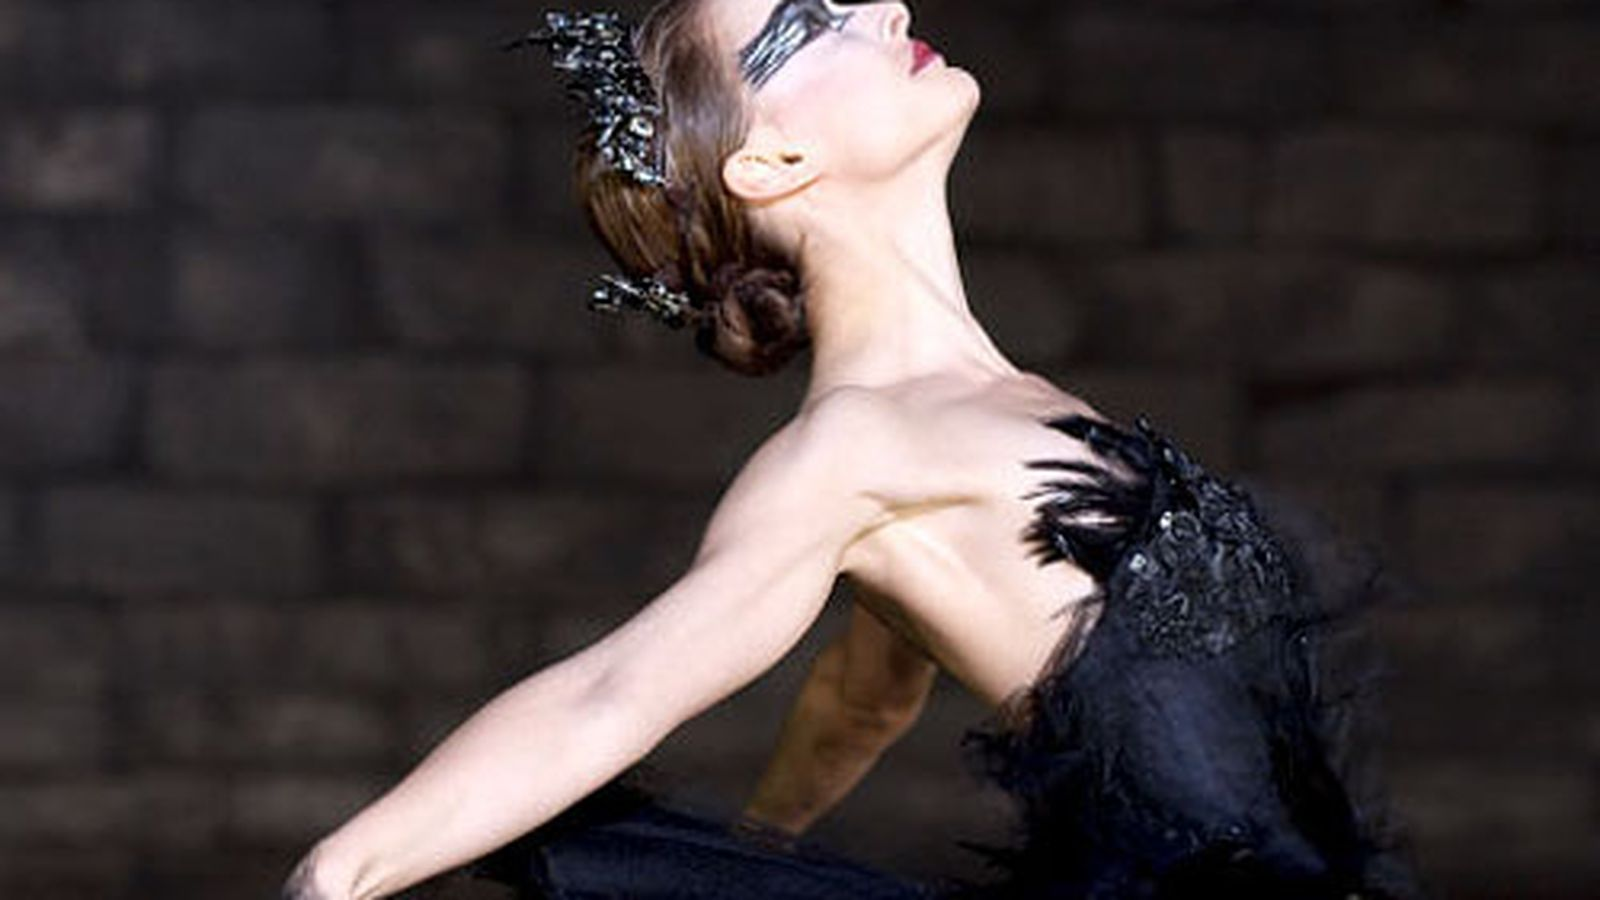 movie essay on black swan Black swan psychology review essay borderline personality disorder the black swan is a psycho thriller film that narrates the demise of a young talented twenty-some year old ballerina named nina sayers.